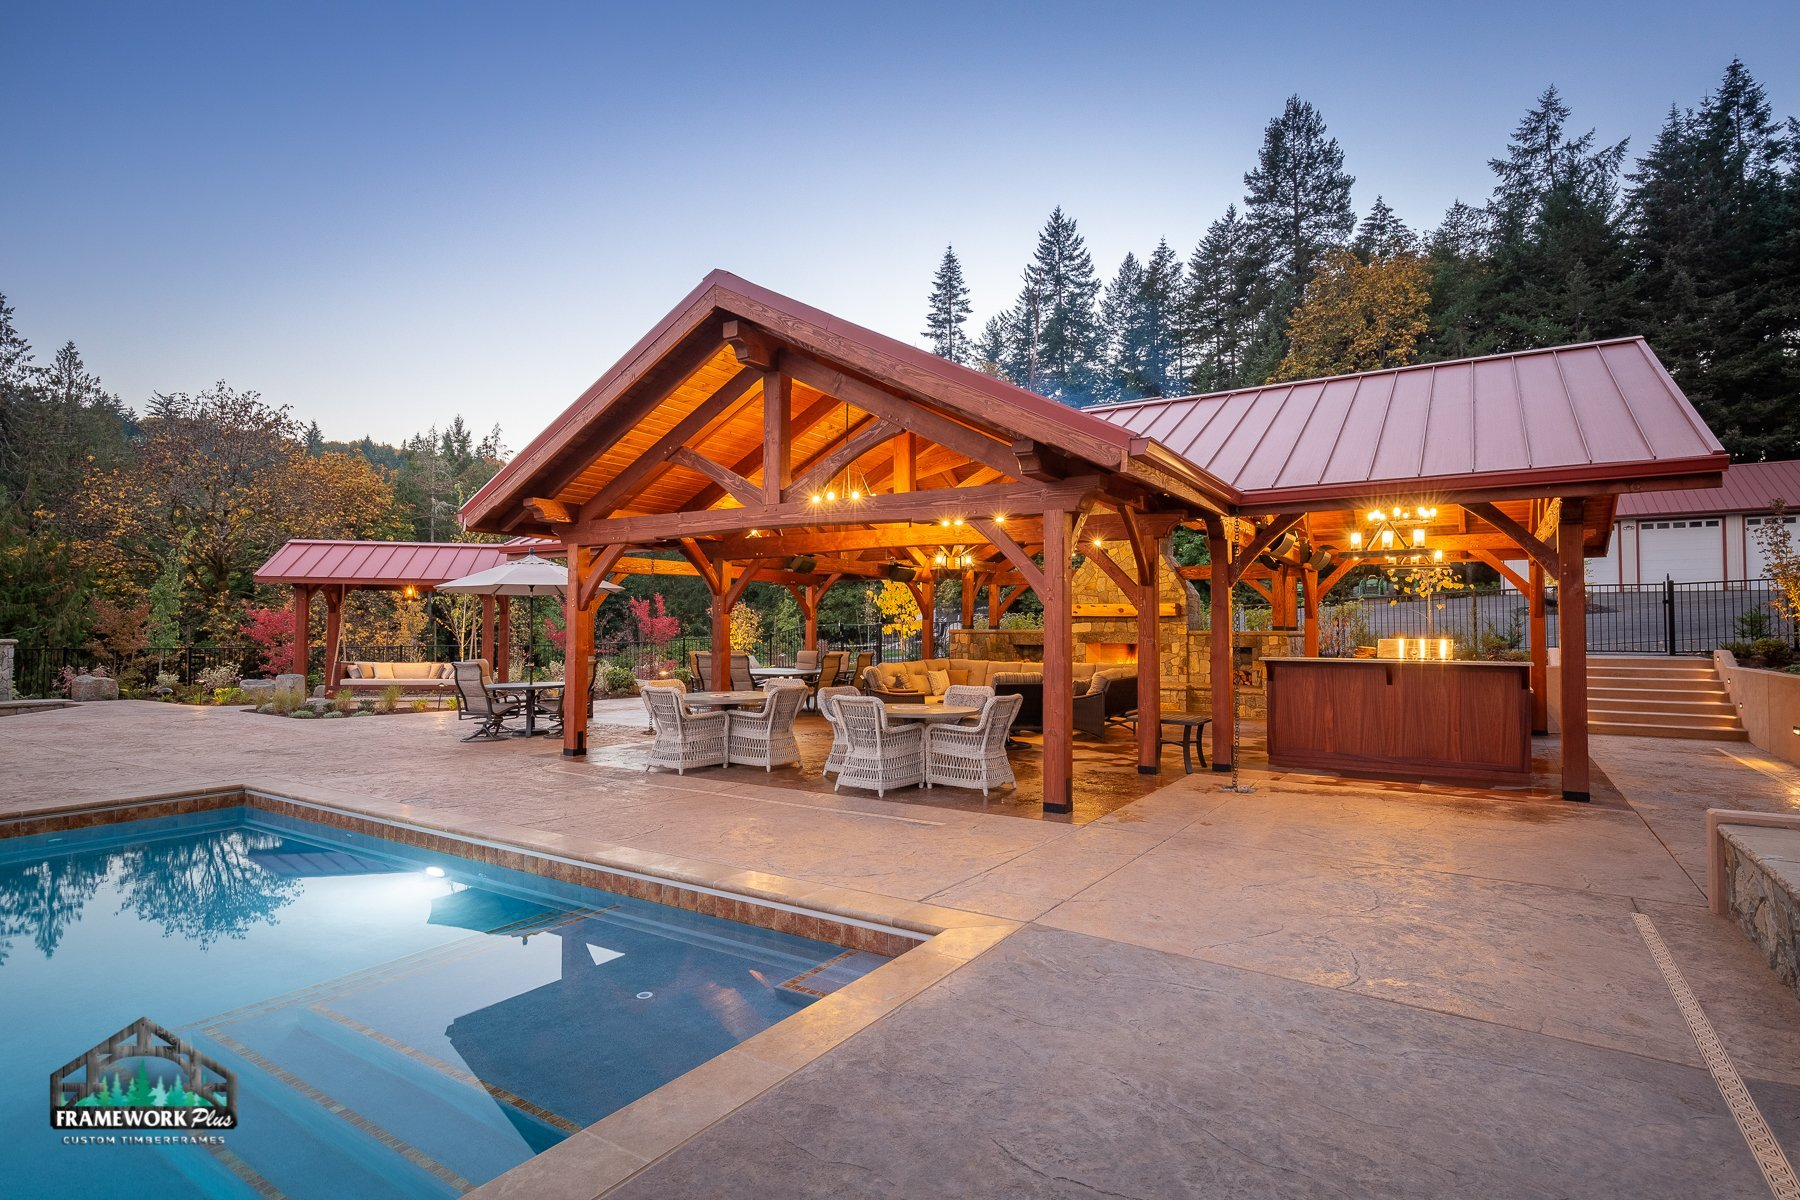 The Willamette Valley Paradise Timber Frame